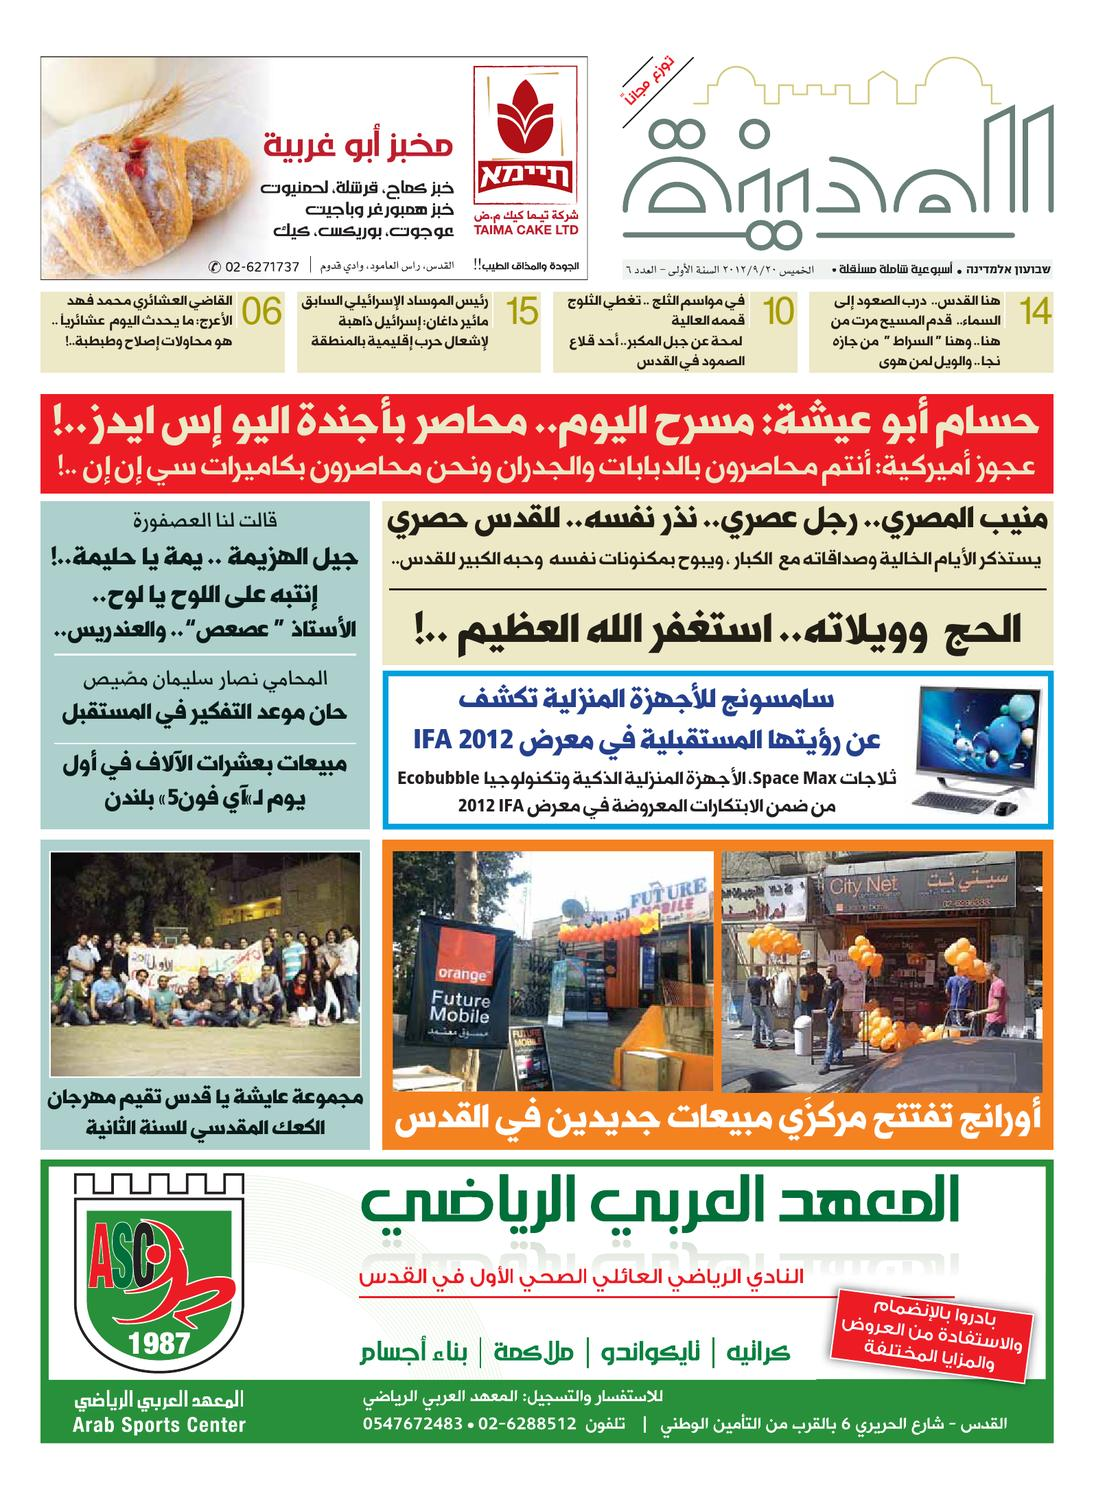 e16d091b9 Al-Madina NP - Issue 06 - 20/9/2012 by Mohammad Abu-Gharbieh - issuu